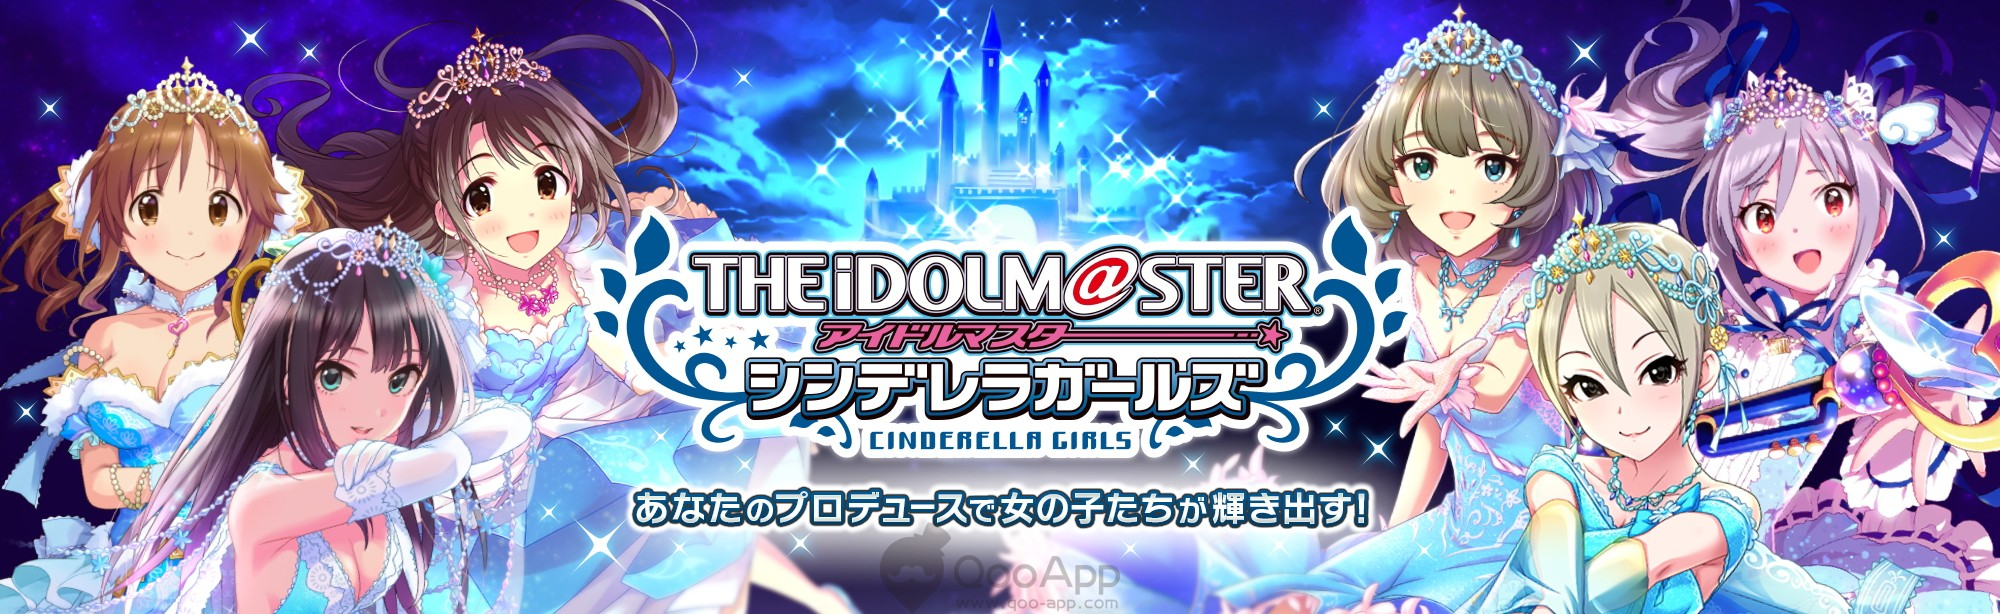 Qoo News Dena Ports Mobile Idol Title The Idolm Ster